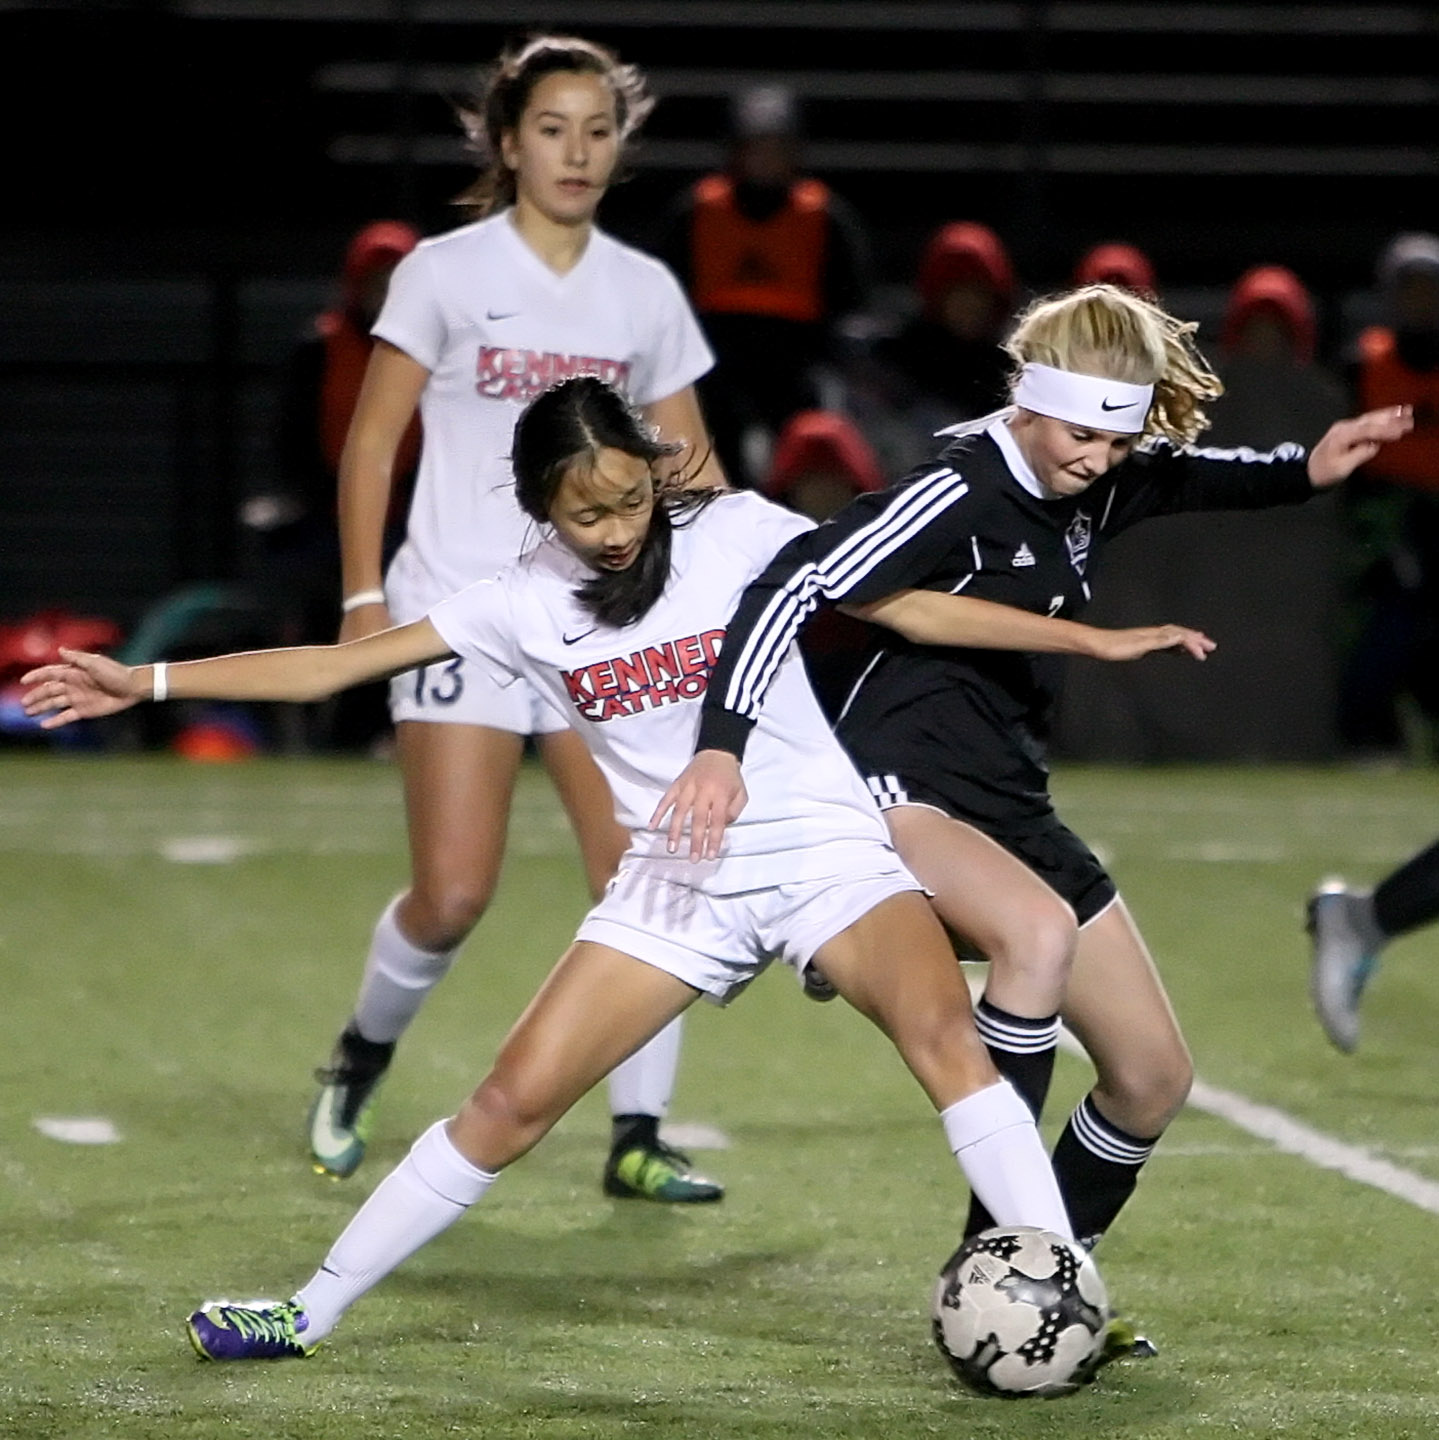 Ashley Nguyen of Kennedy Catholic gets tangled with Lake Stevens Callaway Knutson.